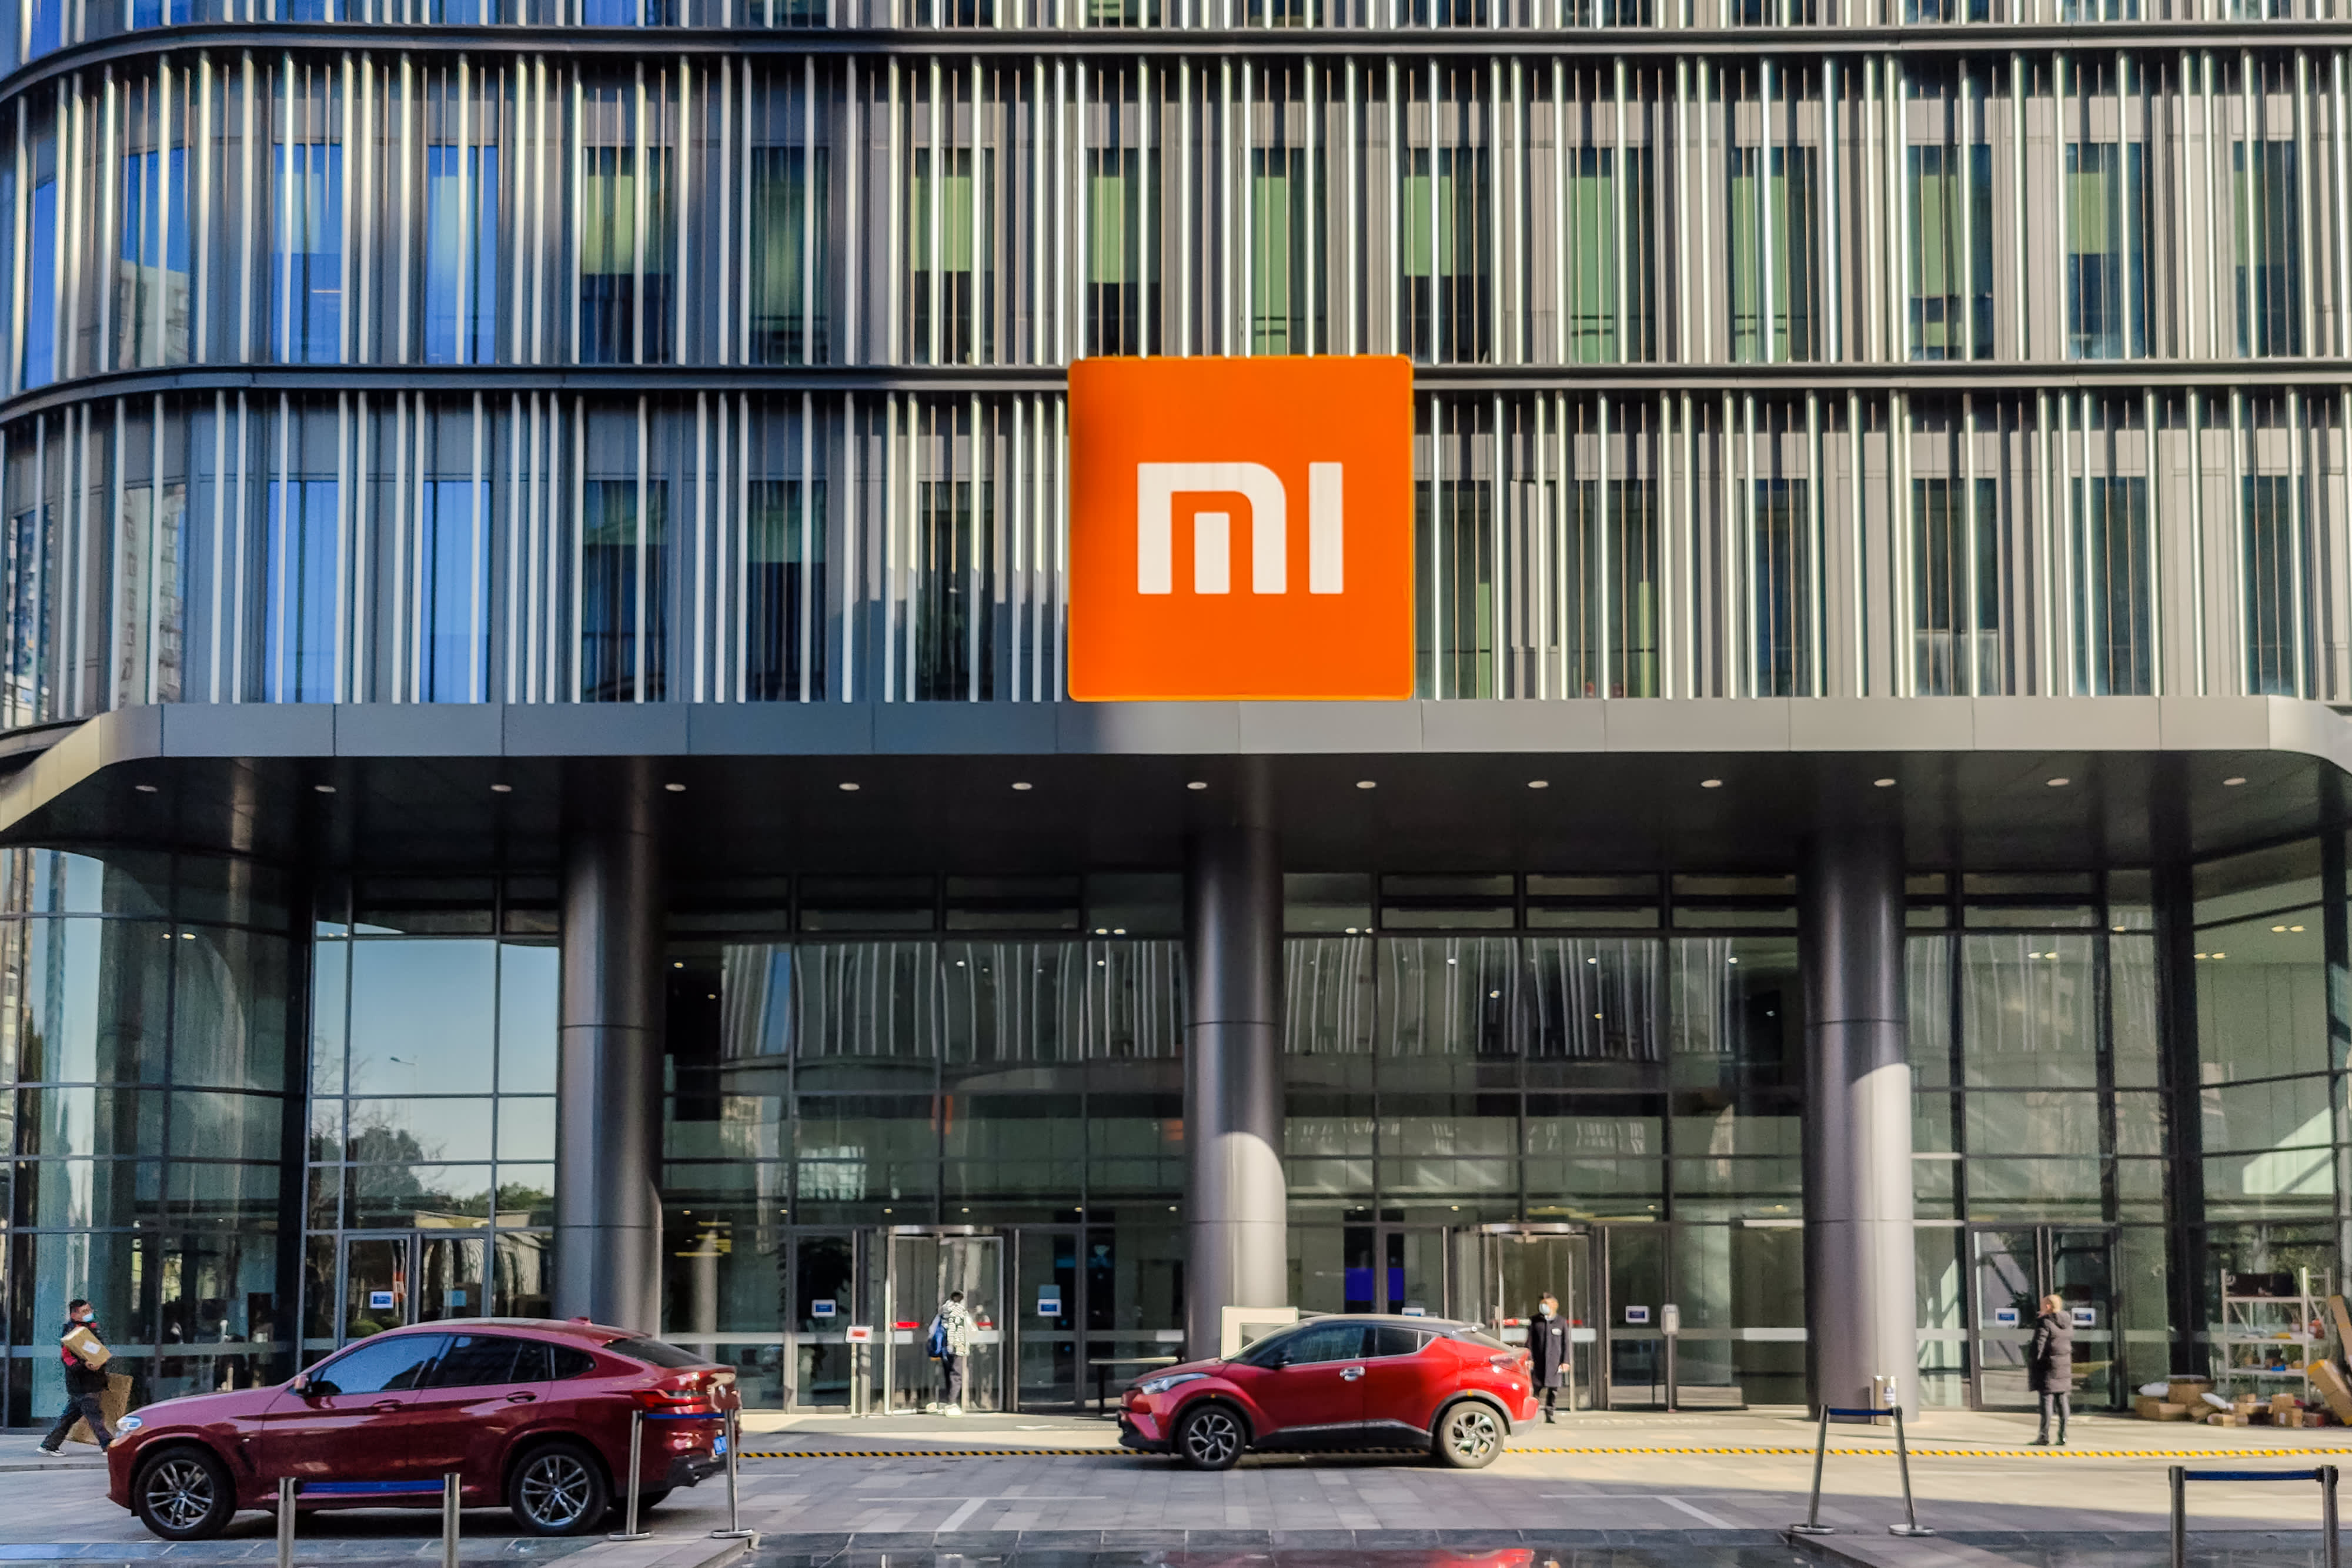 Chinese mobile phone giant Xiaomi shares rally over 6?ter U.S. accepts eliminate it from blacklist thumbnail